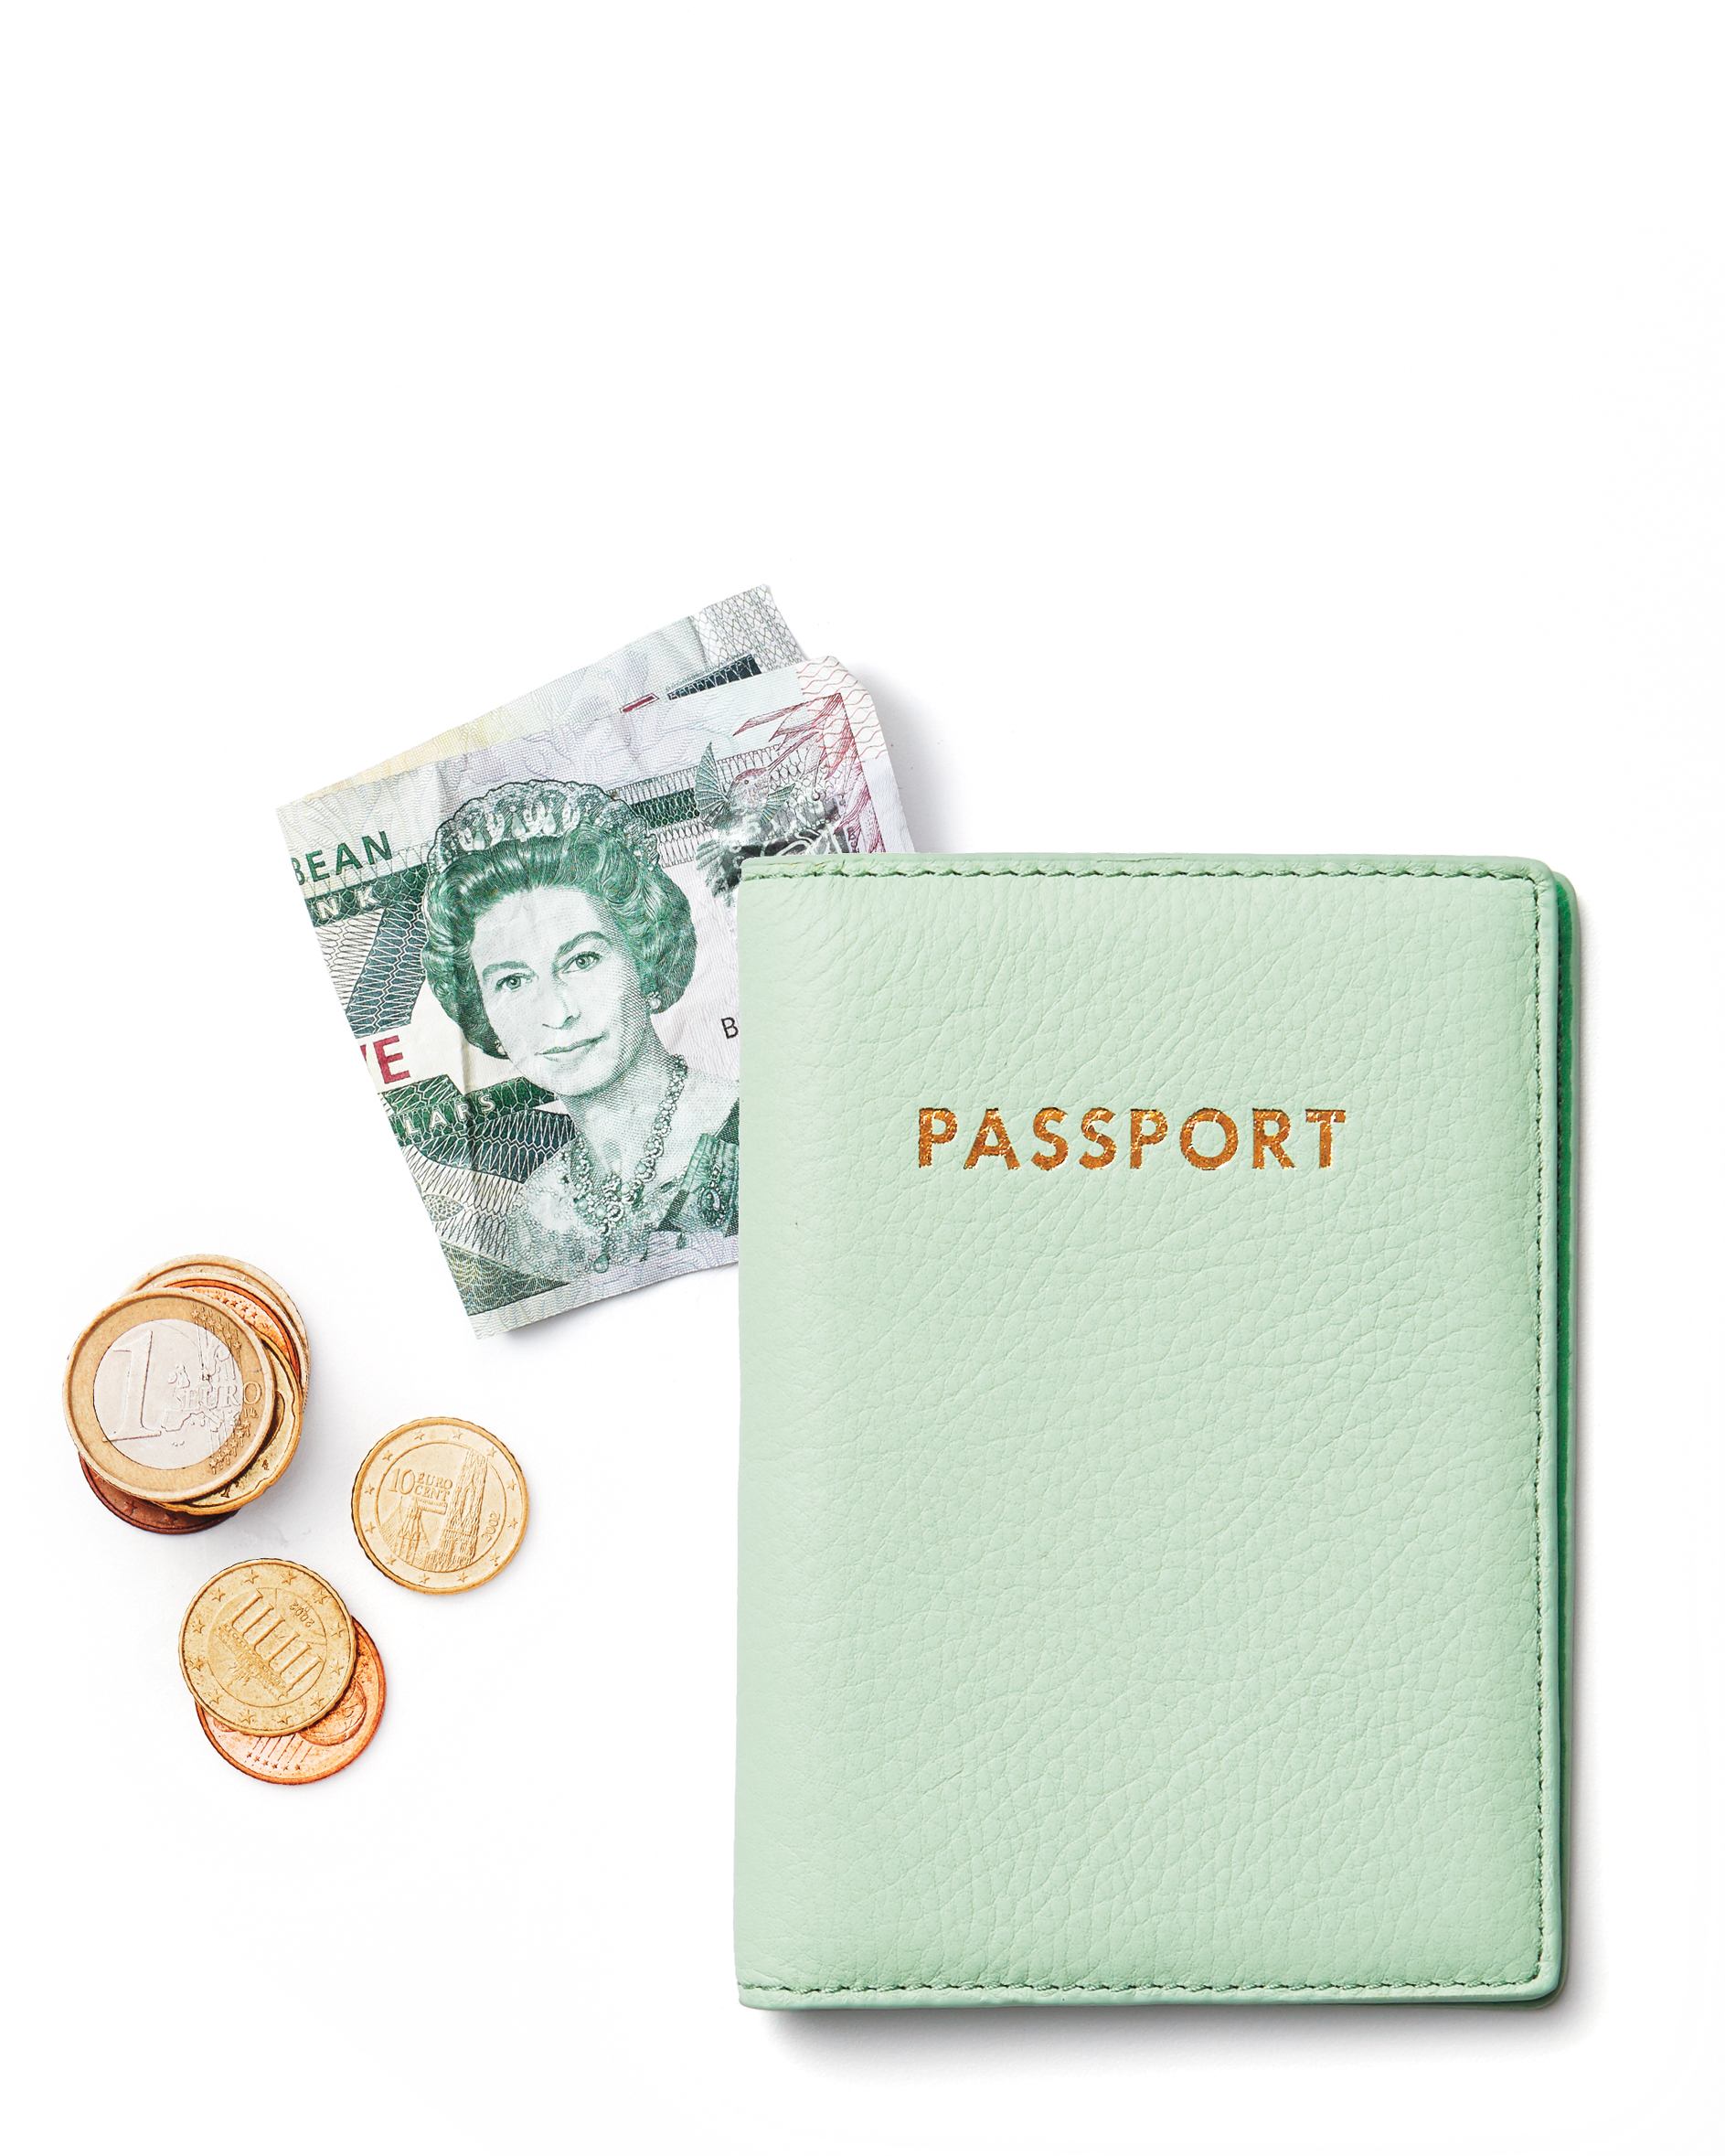 How to Get a Passport Before Your Honeymoon